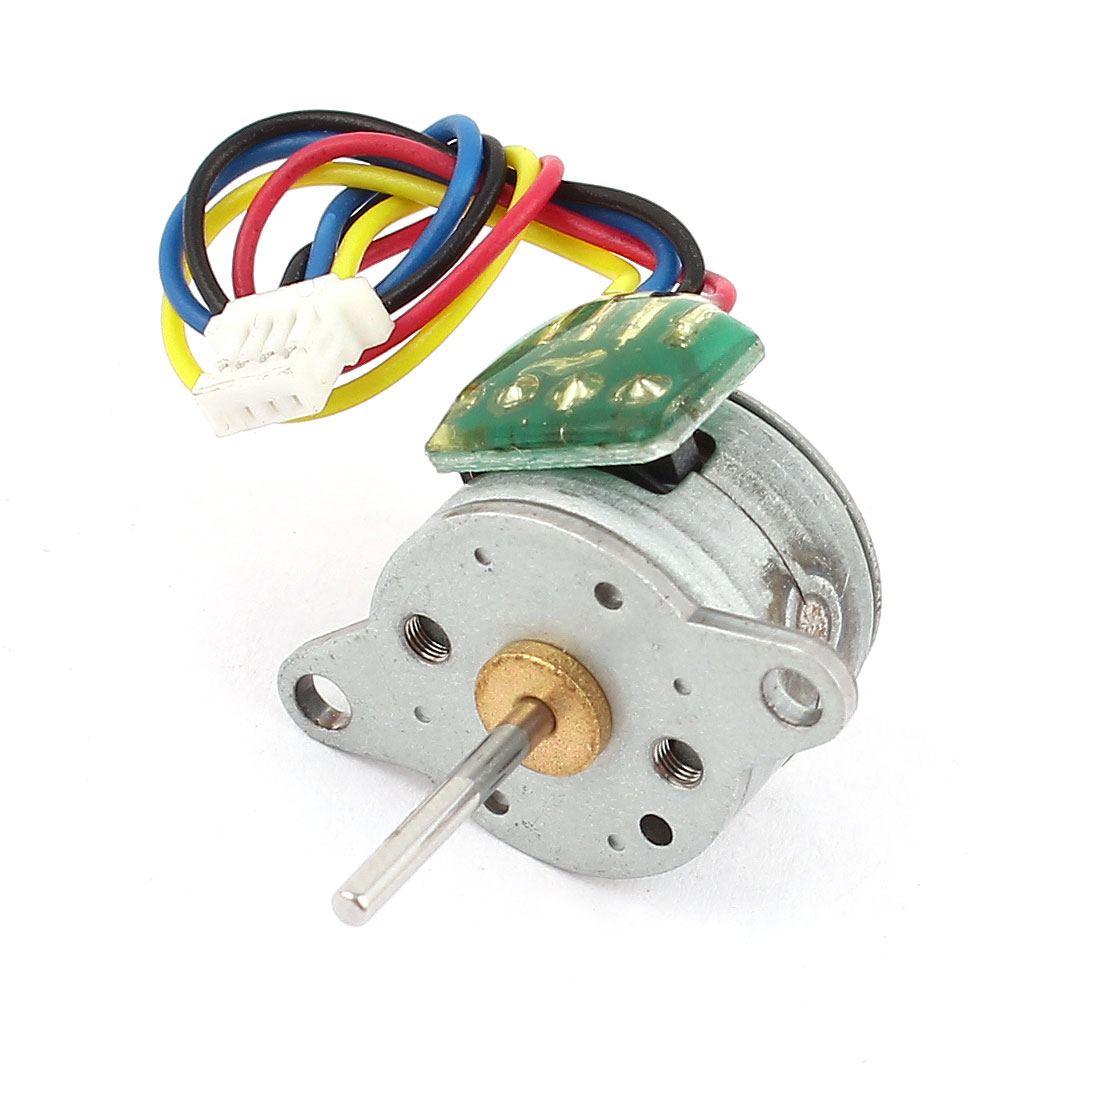 15mmx1.5mm Shaft 2Phase 4Wire 4Pin Connector Micro Step Stepper Motor DC 3-6V